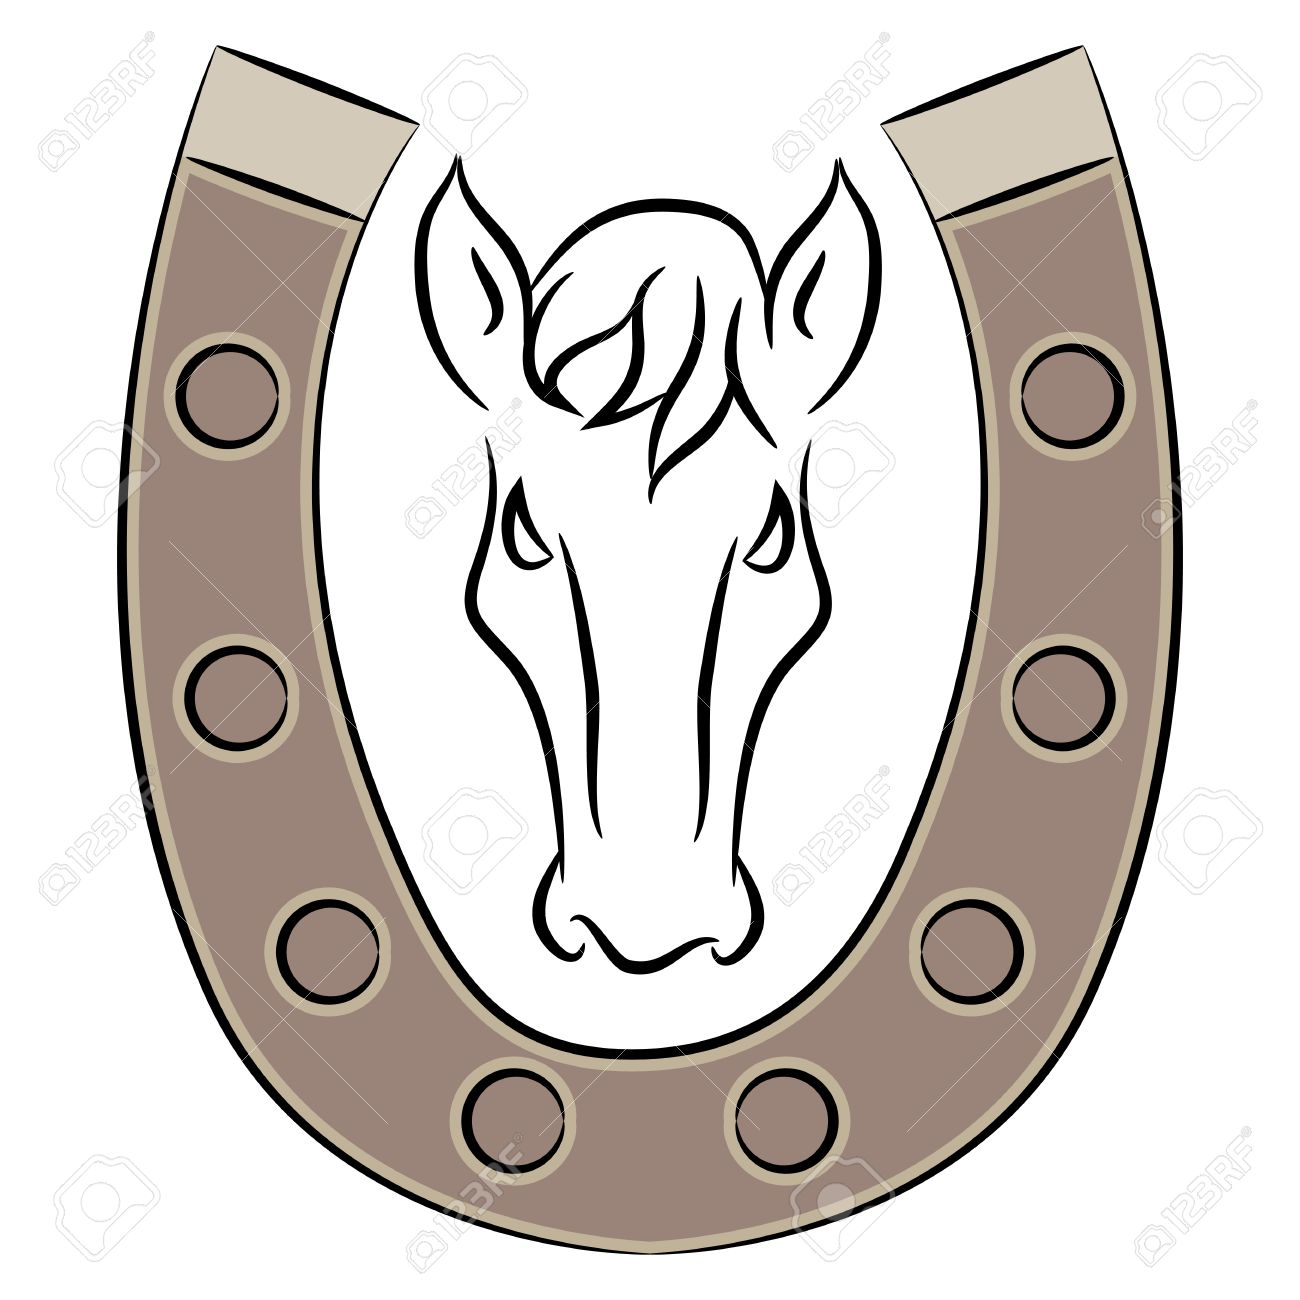 1300x1300 Horseshoe With Horse Drawing. Royalty Free Cliparts, Vectors,